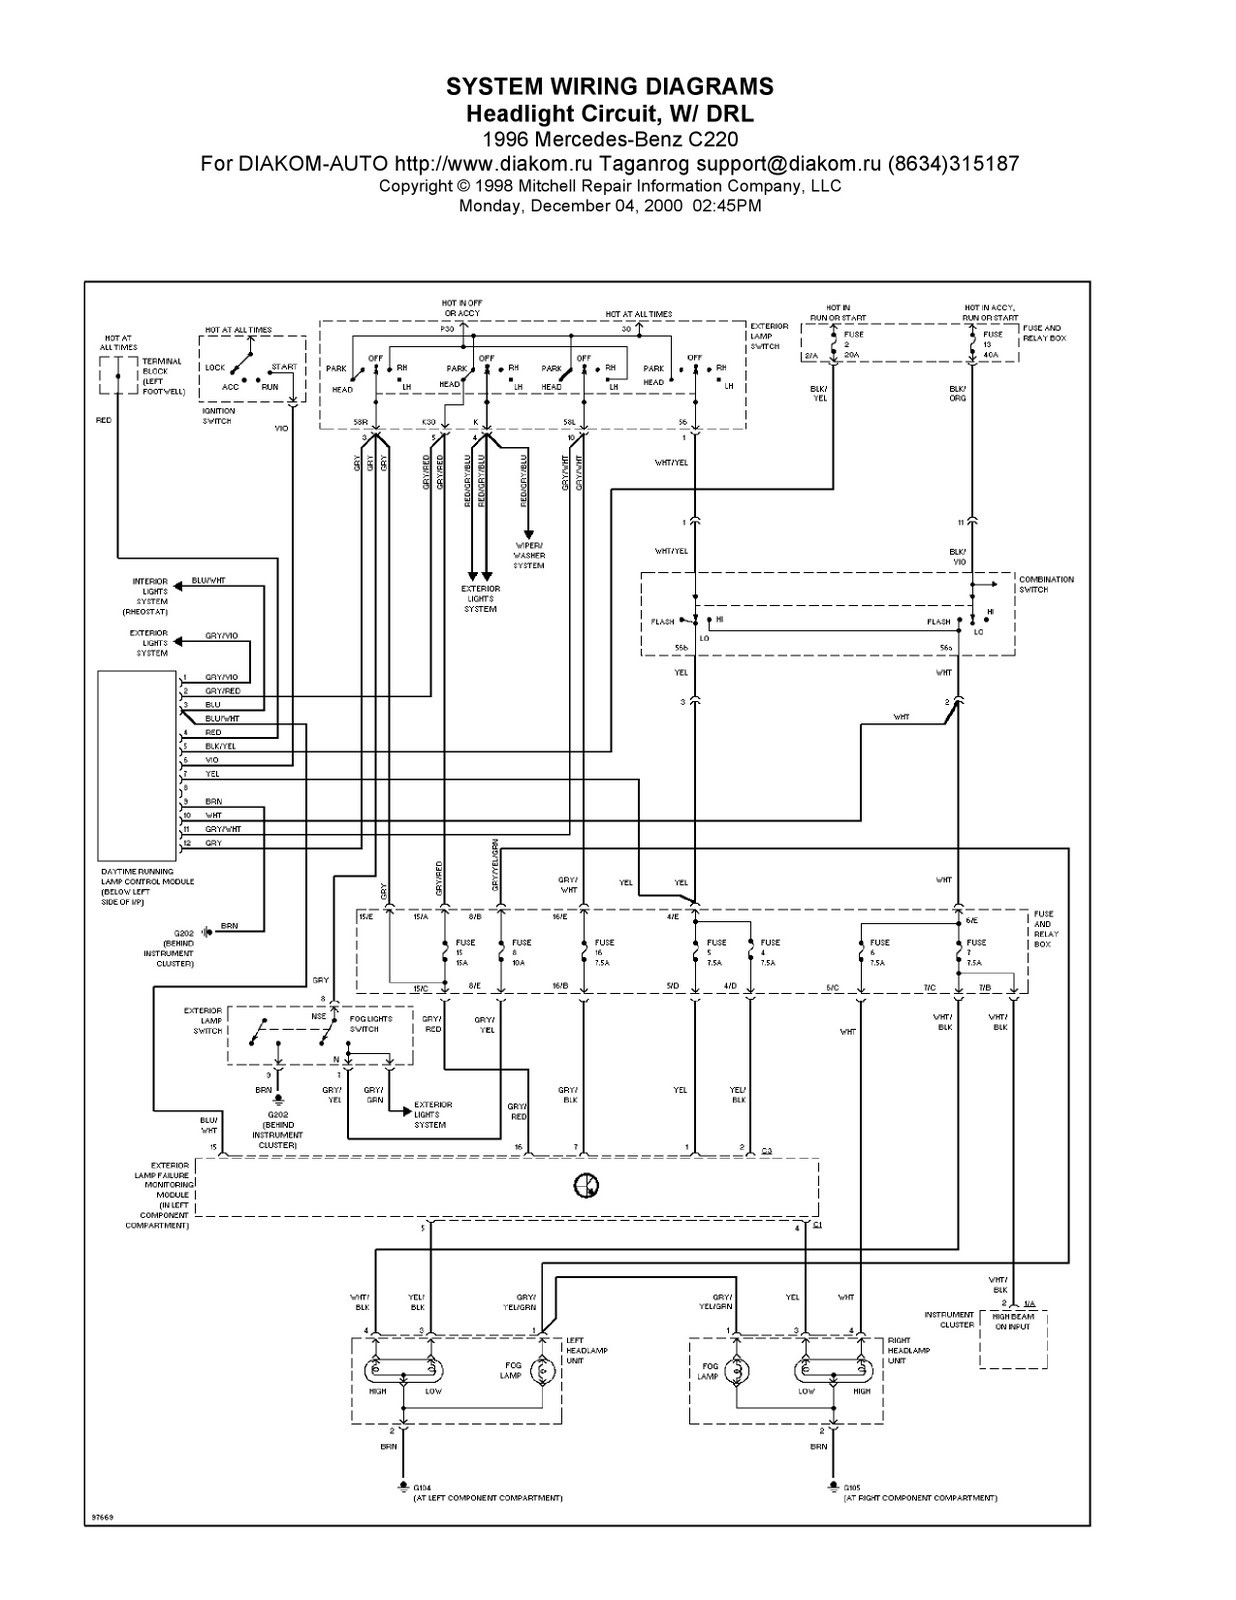 wiring diagram de motor mercedes benz